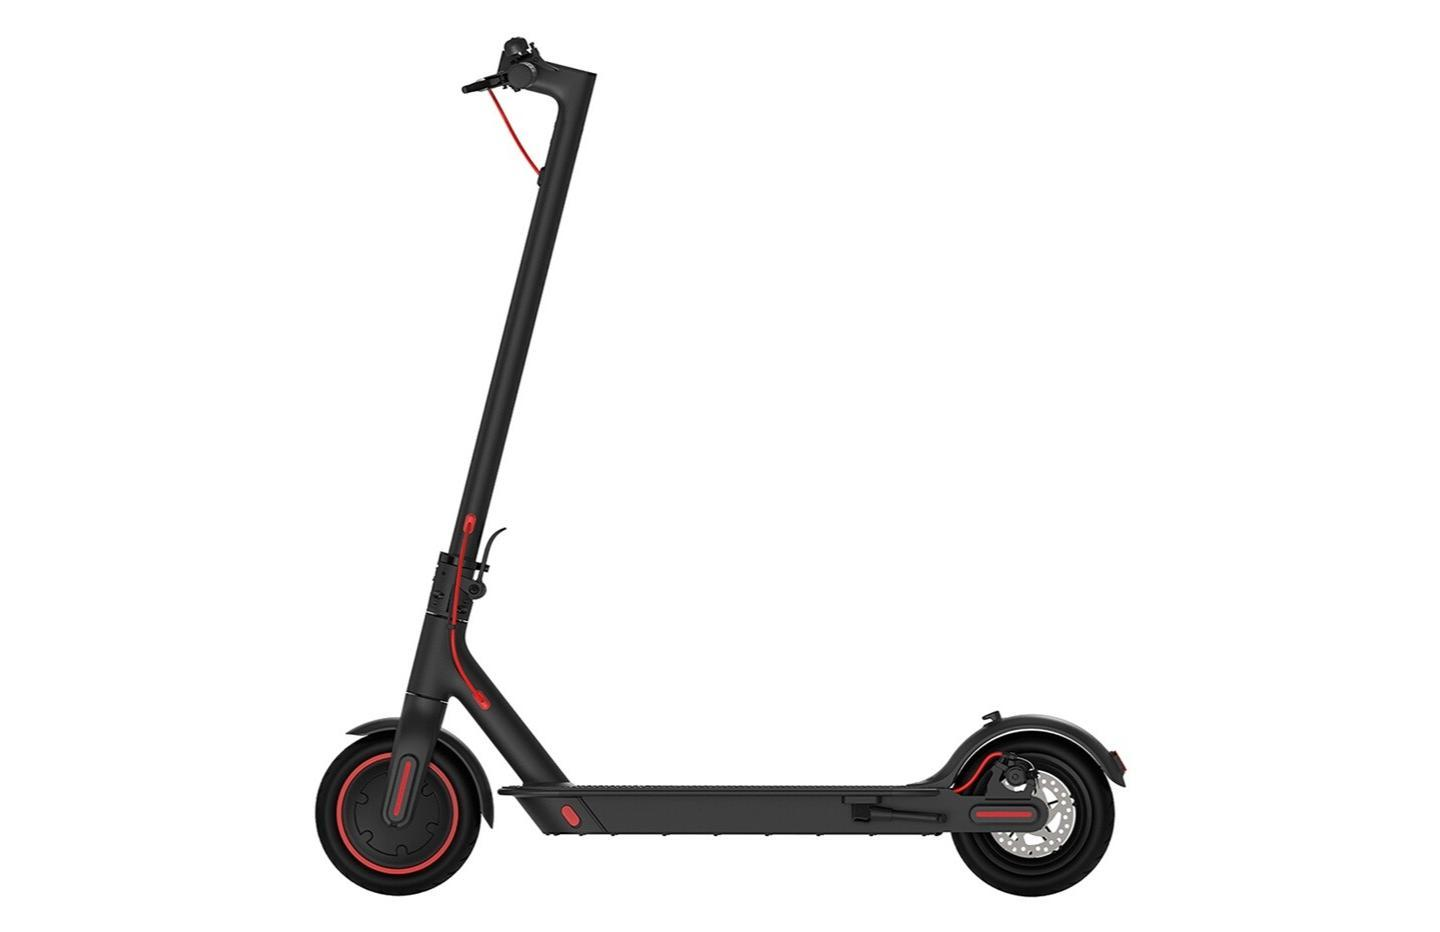 Grève RATP : la solution trottinette Xiaomi M365 Pro à 409 € chez Darty